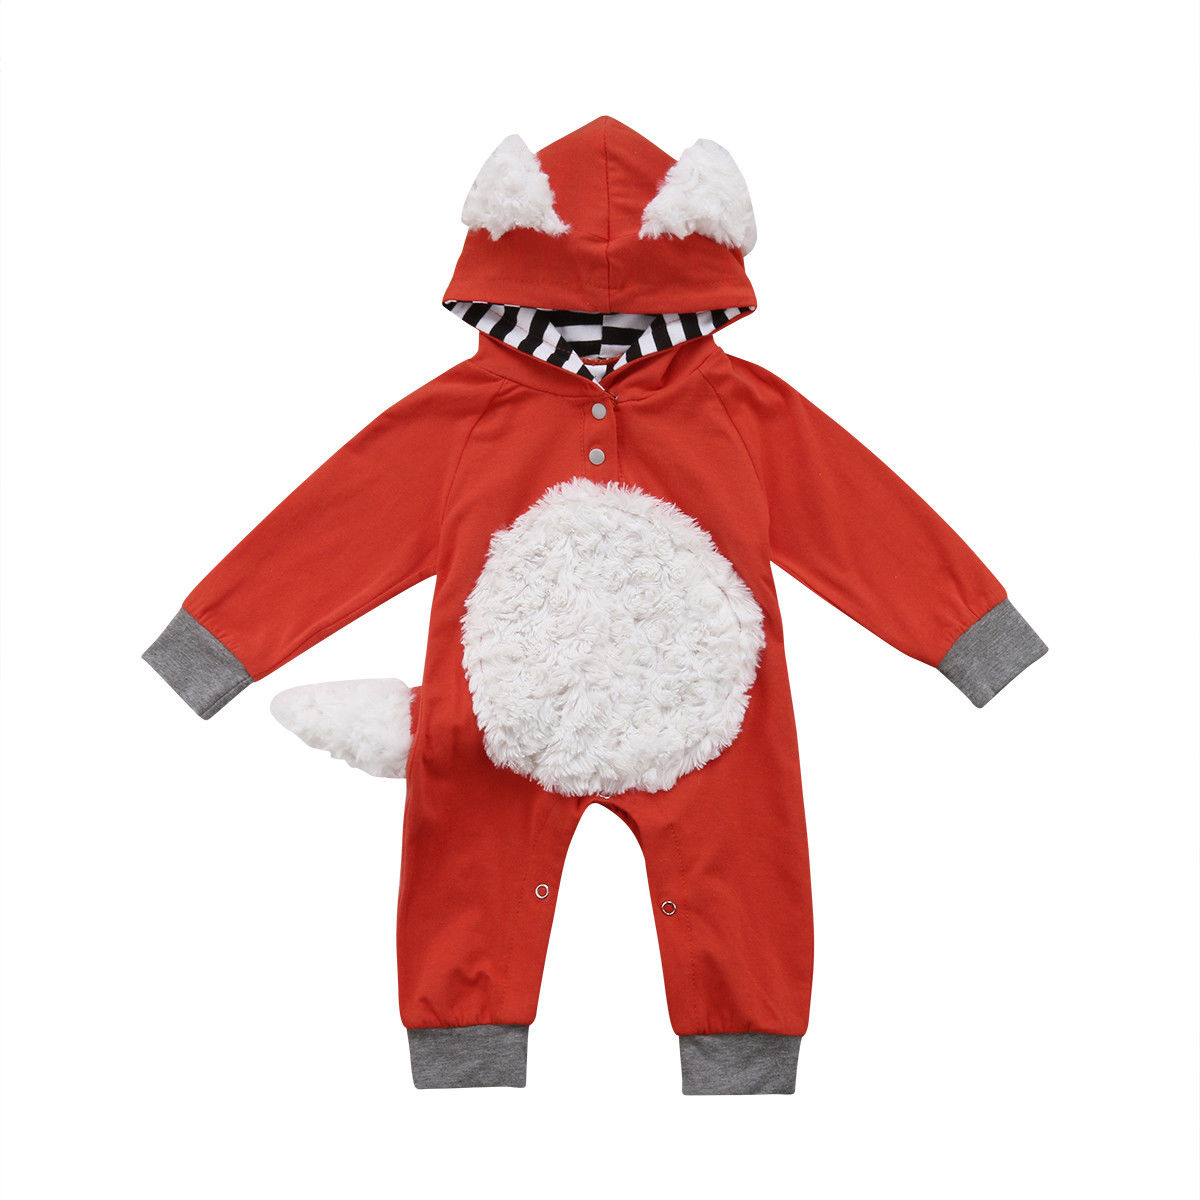 0-24M New Newborn Baby Boy Girl Fall Winter Clothes Long Sleeve Cartoon Fox 3D Hooded   Romper   Jumpsuit Outfits Warm Clothing